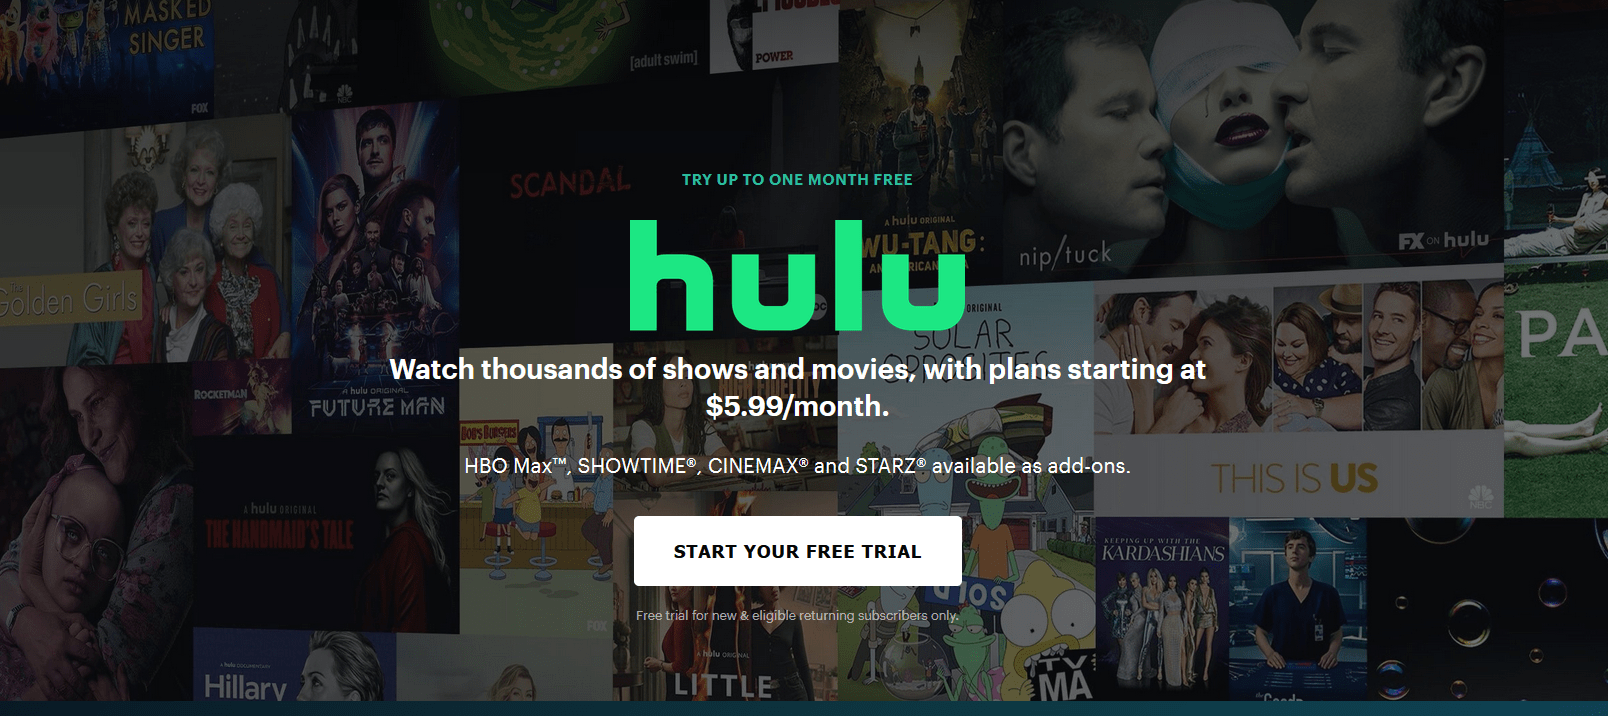 hulu is an excellent Alternatives to SolarMovie